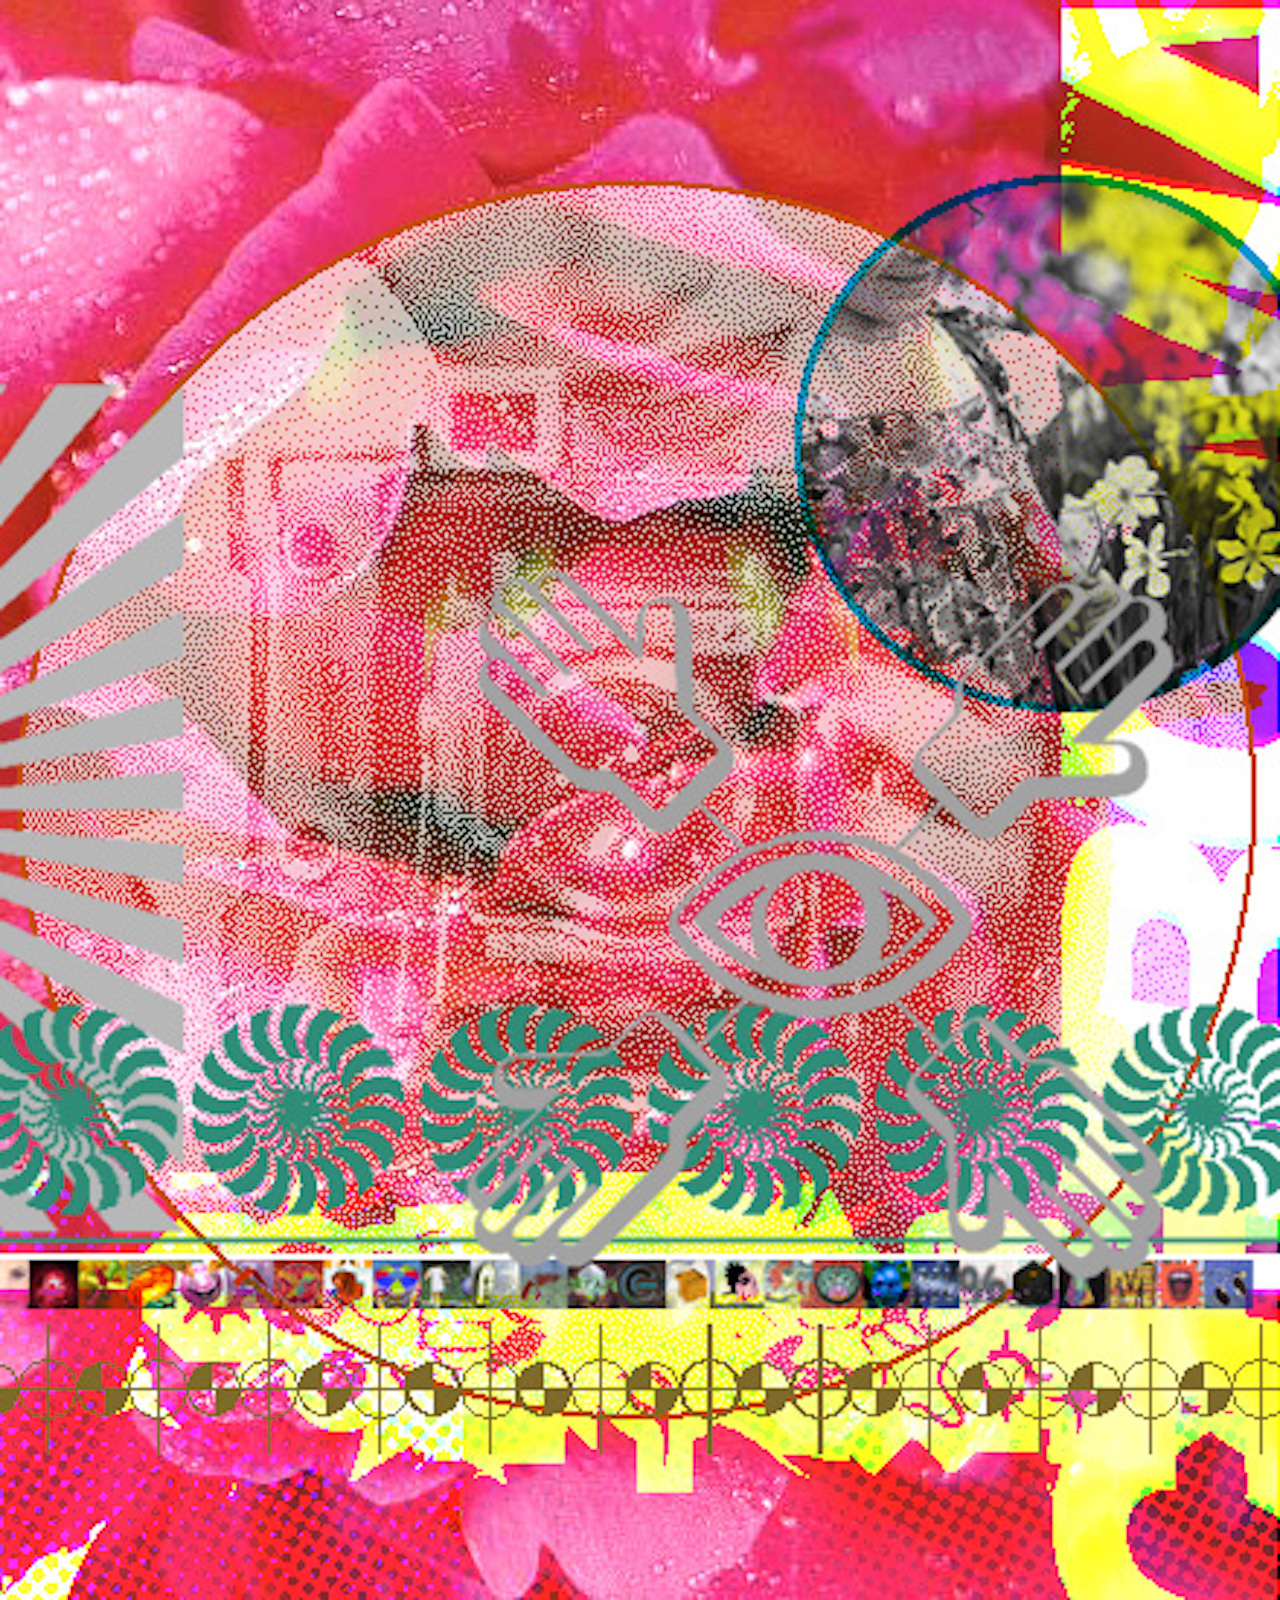 A woman holding a camera is overlaid bright pink roses, beside her is another image overlaid of a child holding a flower.